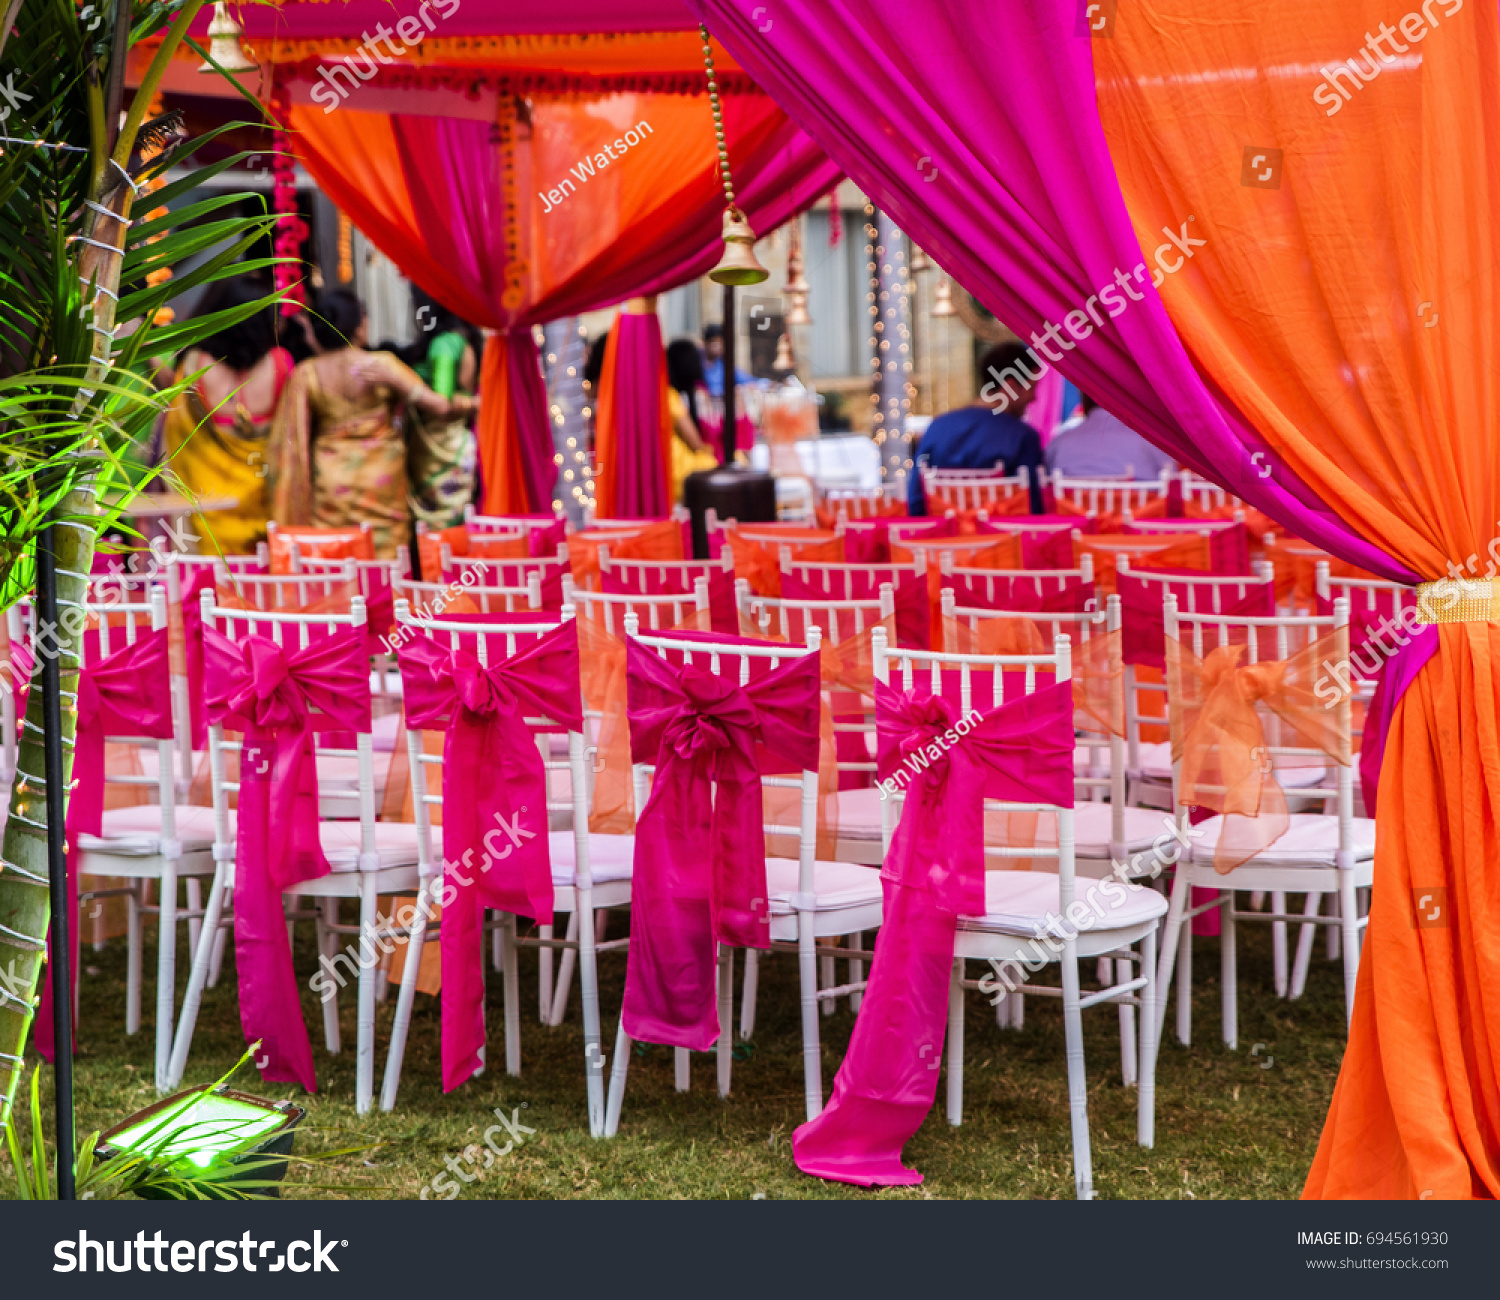 Colorful outdoor lawn tent and garden setting for Indian pre-wedding ceremony. Vibrant pink & Colorful Outdoor Lawn Tent Garden Setting Stock Photo 694561930 ...